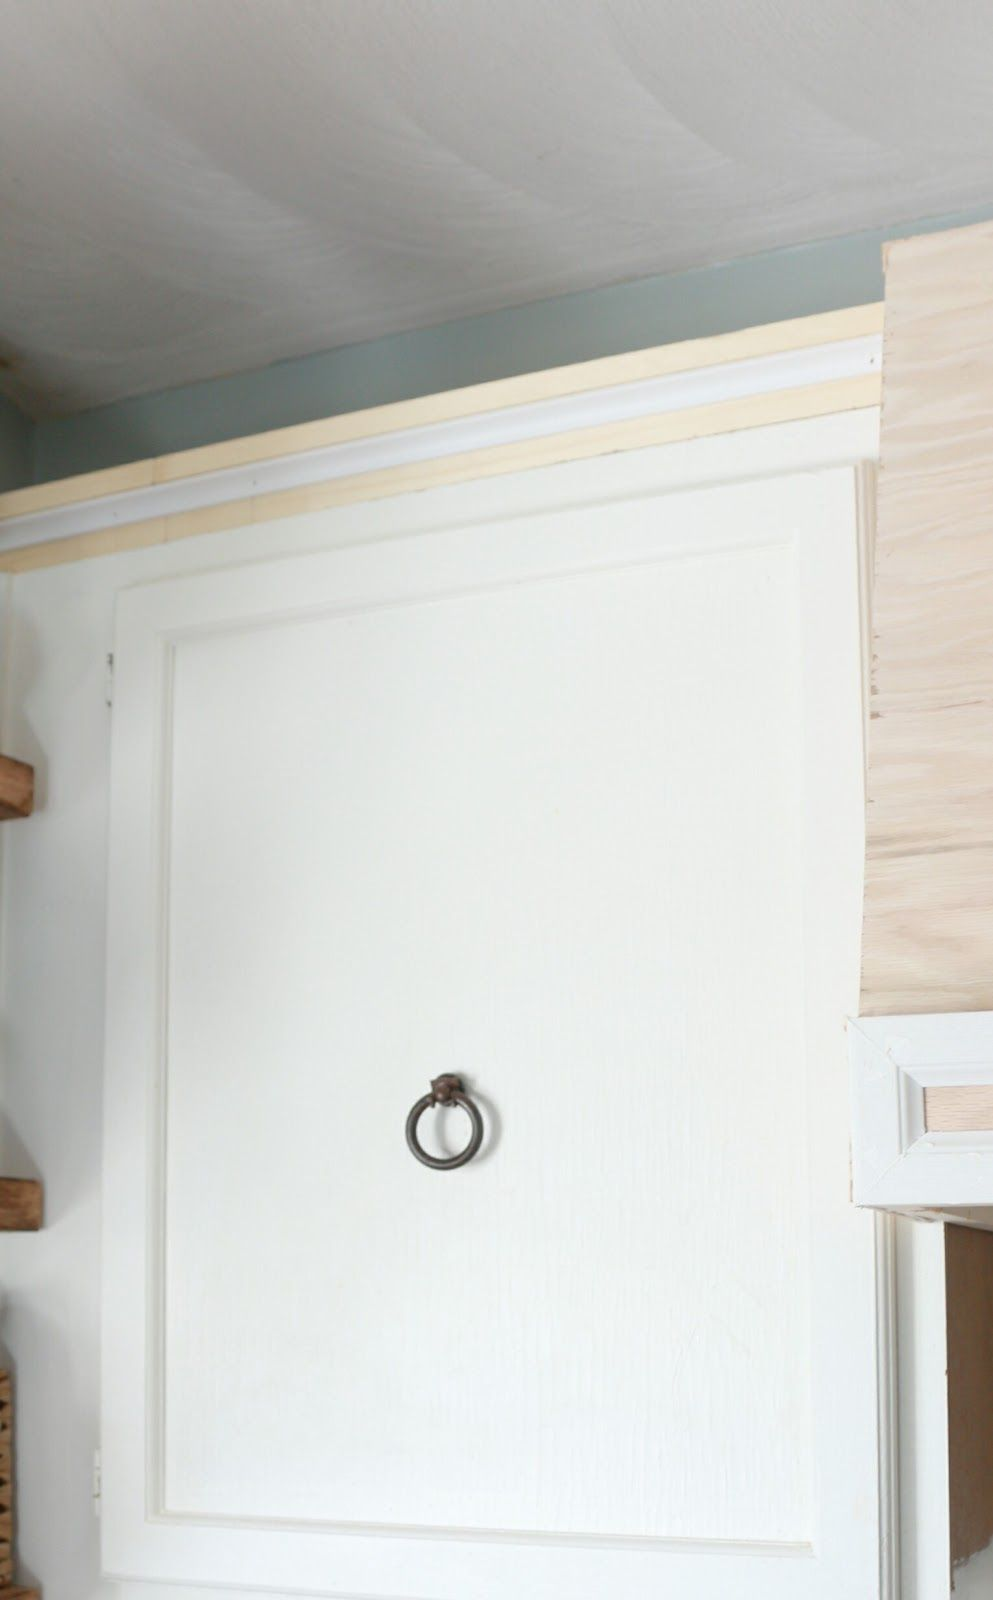 My DIY Kitchen Cabinet Crown Molding, How to Fake the Look Without the Fuss - Diy kitchen, Diy kitchen cabinets, Plate rack wall, Kitchen cabinet crown molding, Diy plate rack, Woodworking plans - How to get the look of cabinet crown molding without cutting tricky corners